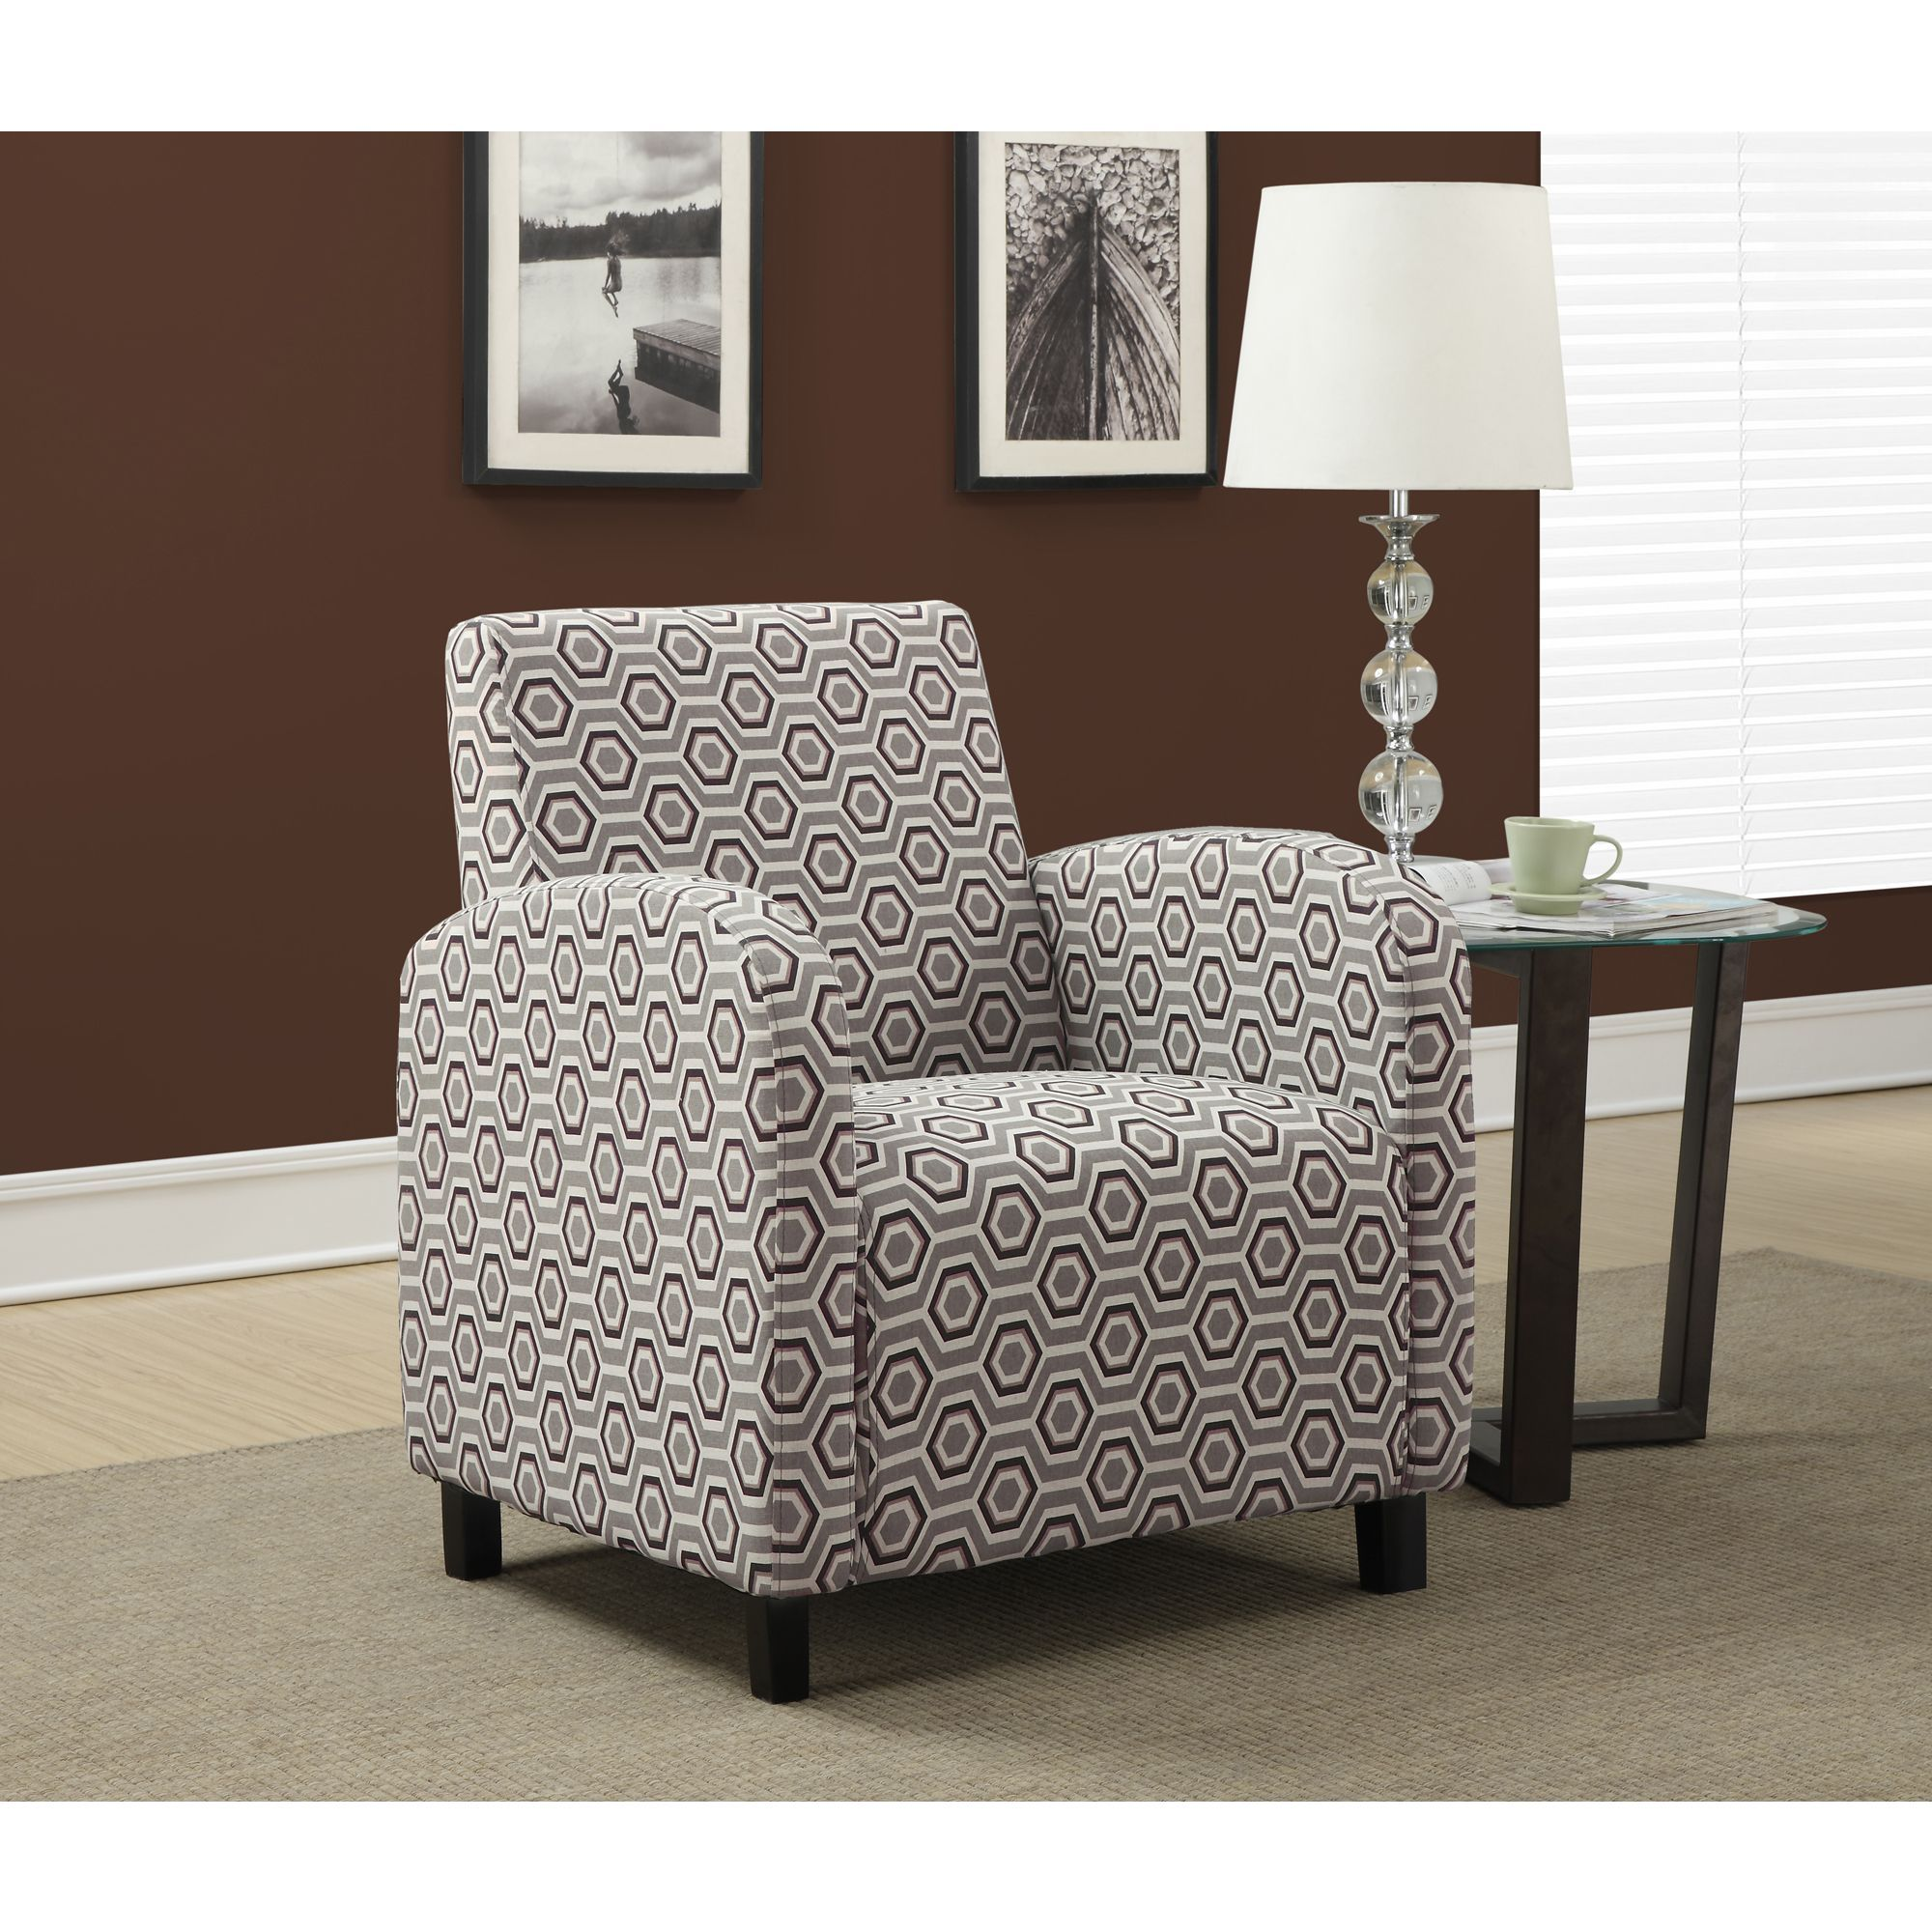 Relax In Style And Comfort With This Cozy Grey Accent Chair